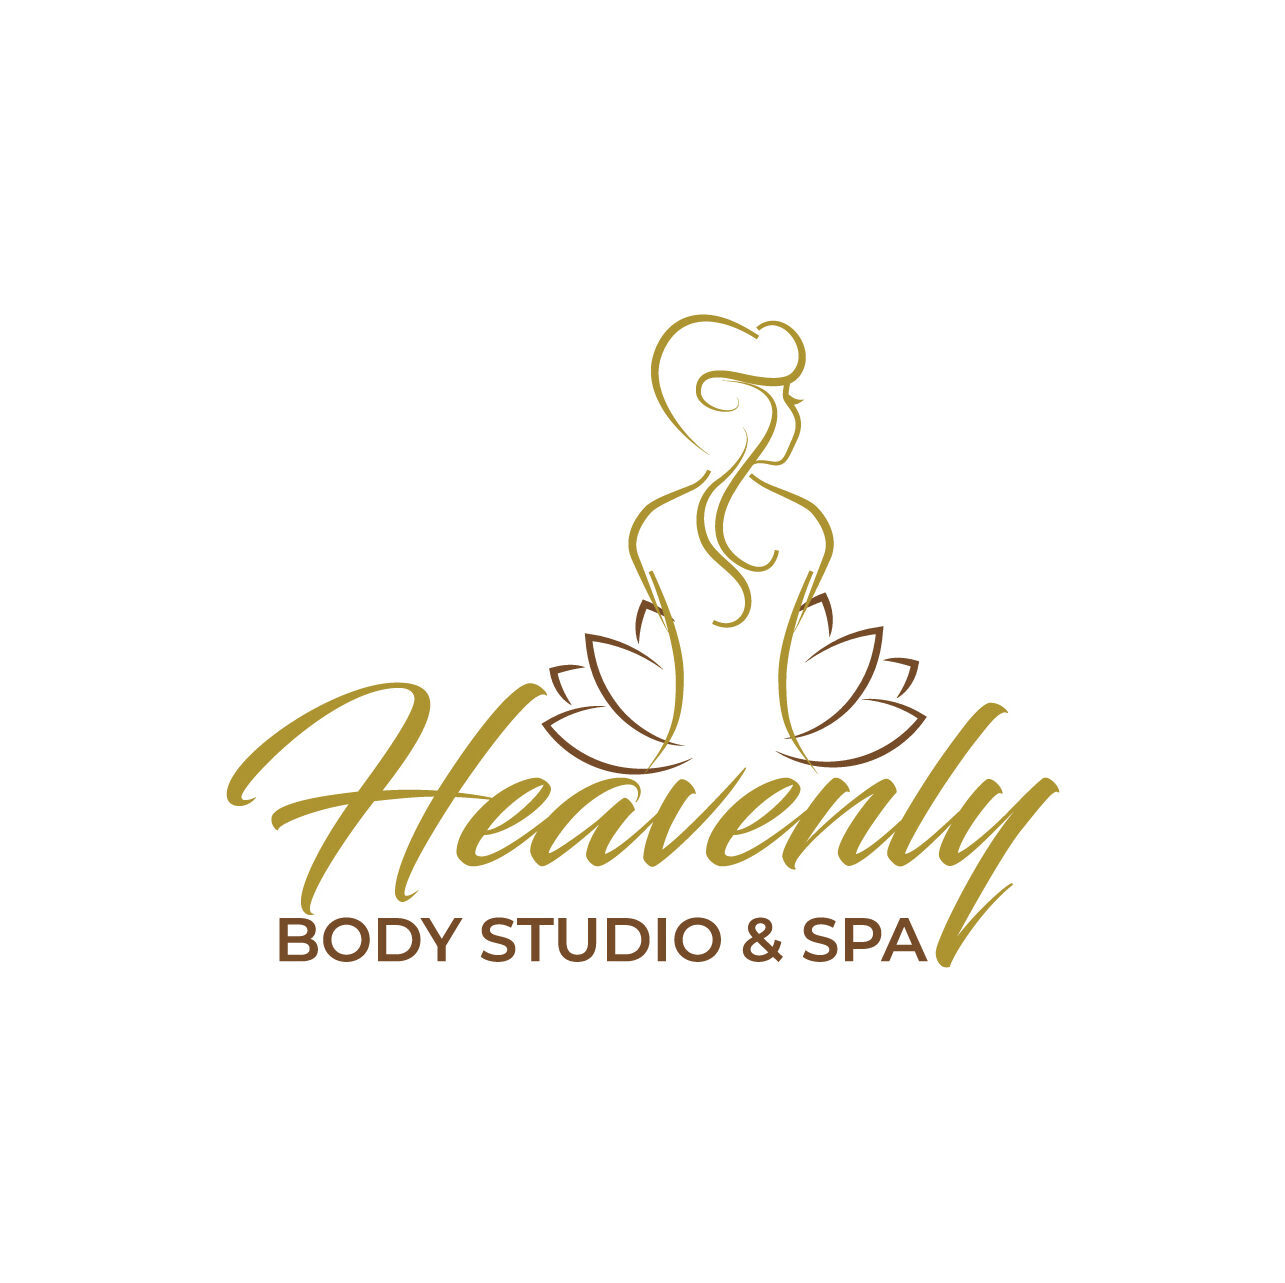 Heavenly Body Studio & Spa